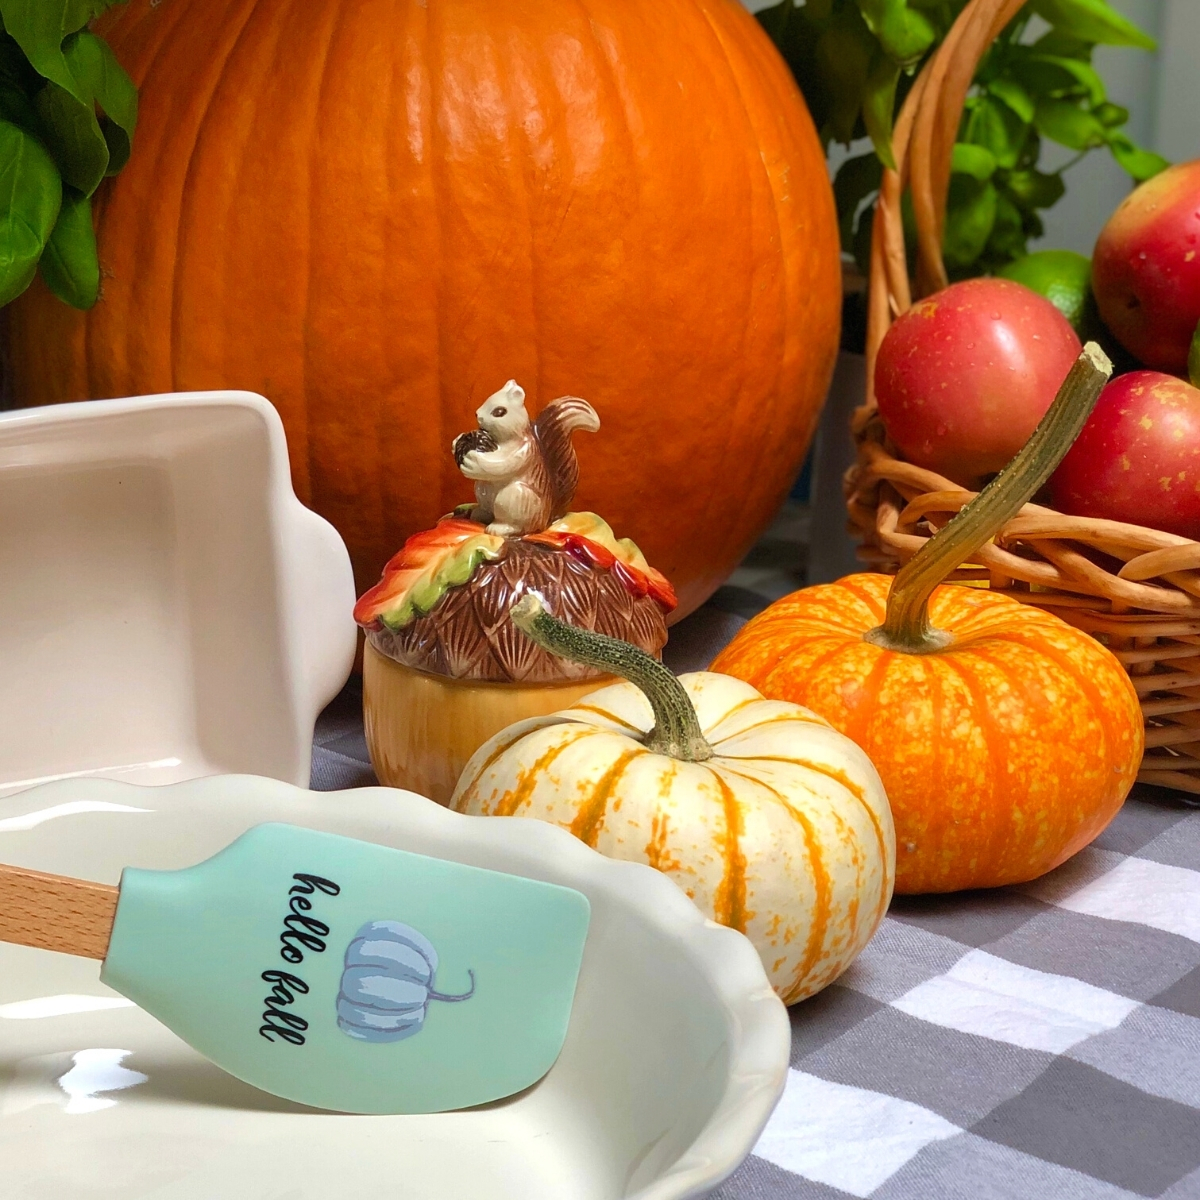 Pumpkins, apples and bakeware in a fall-themed display.